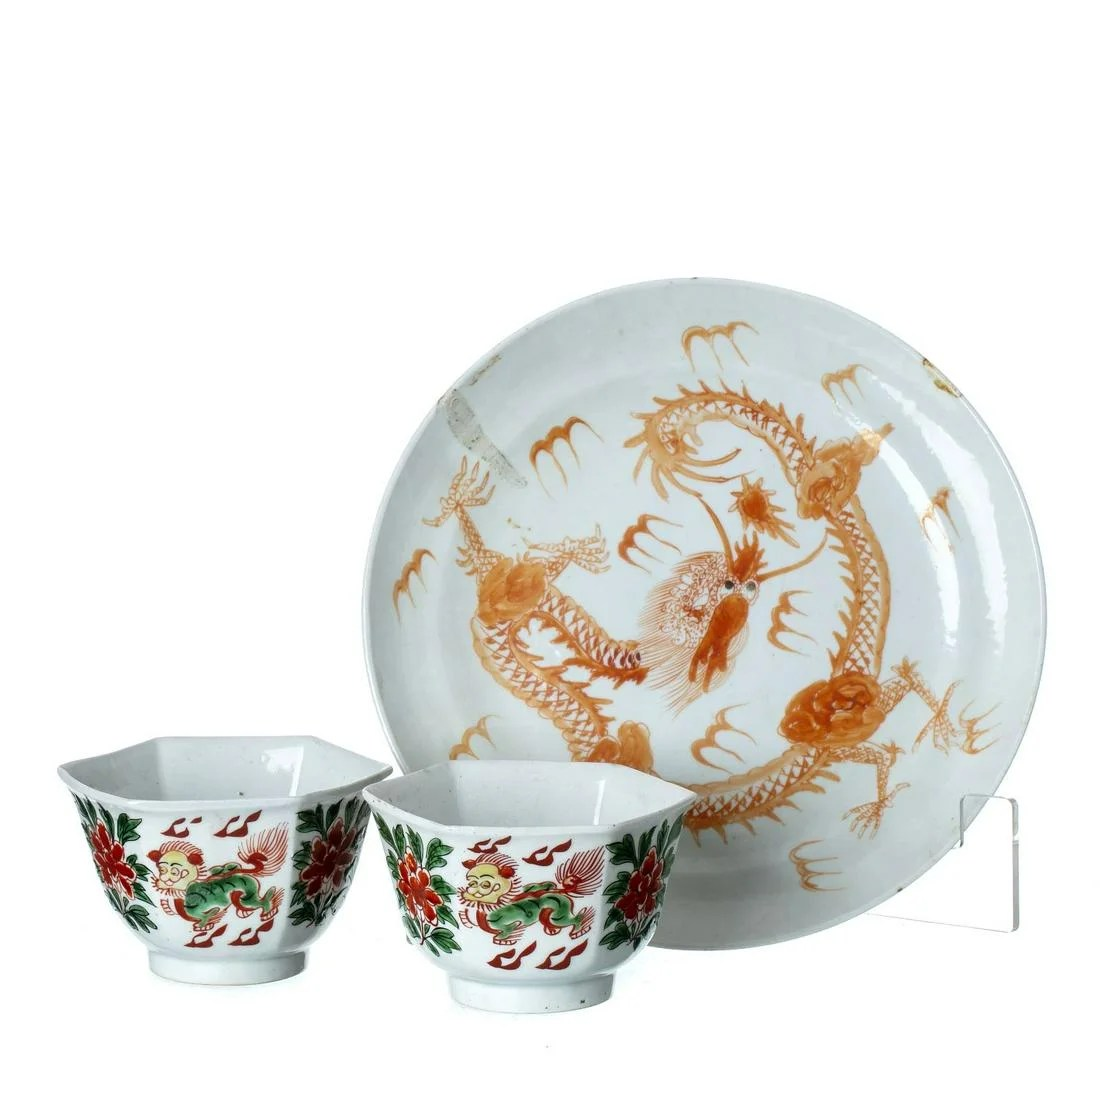 Chinese porcelain dragon plate and two cups